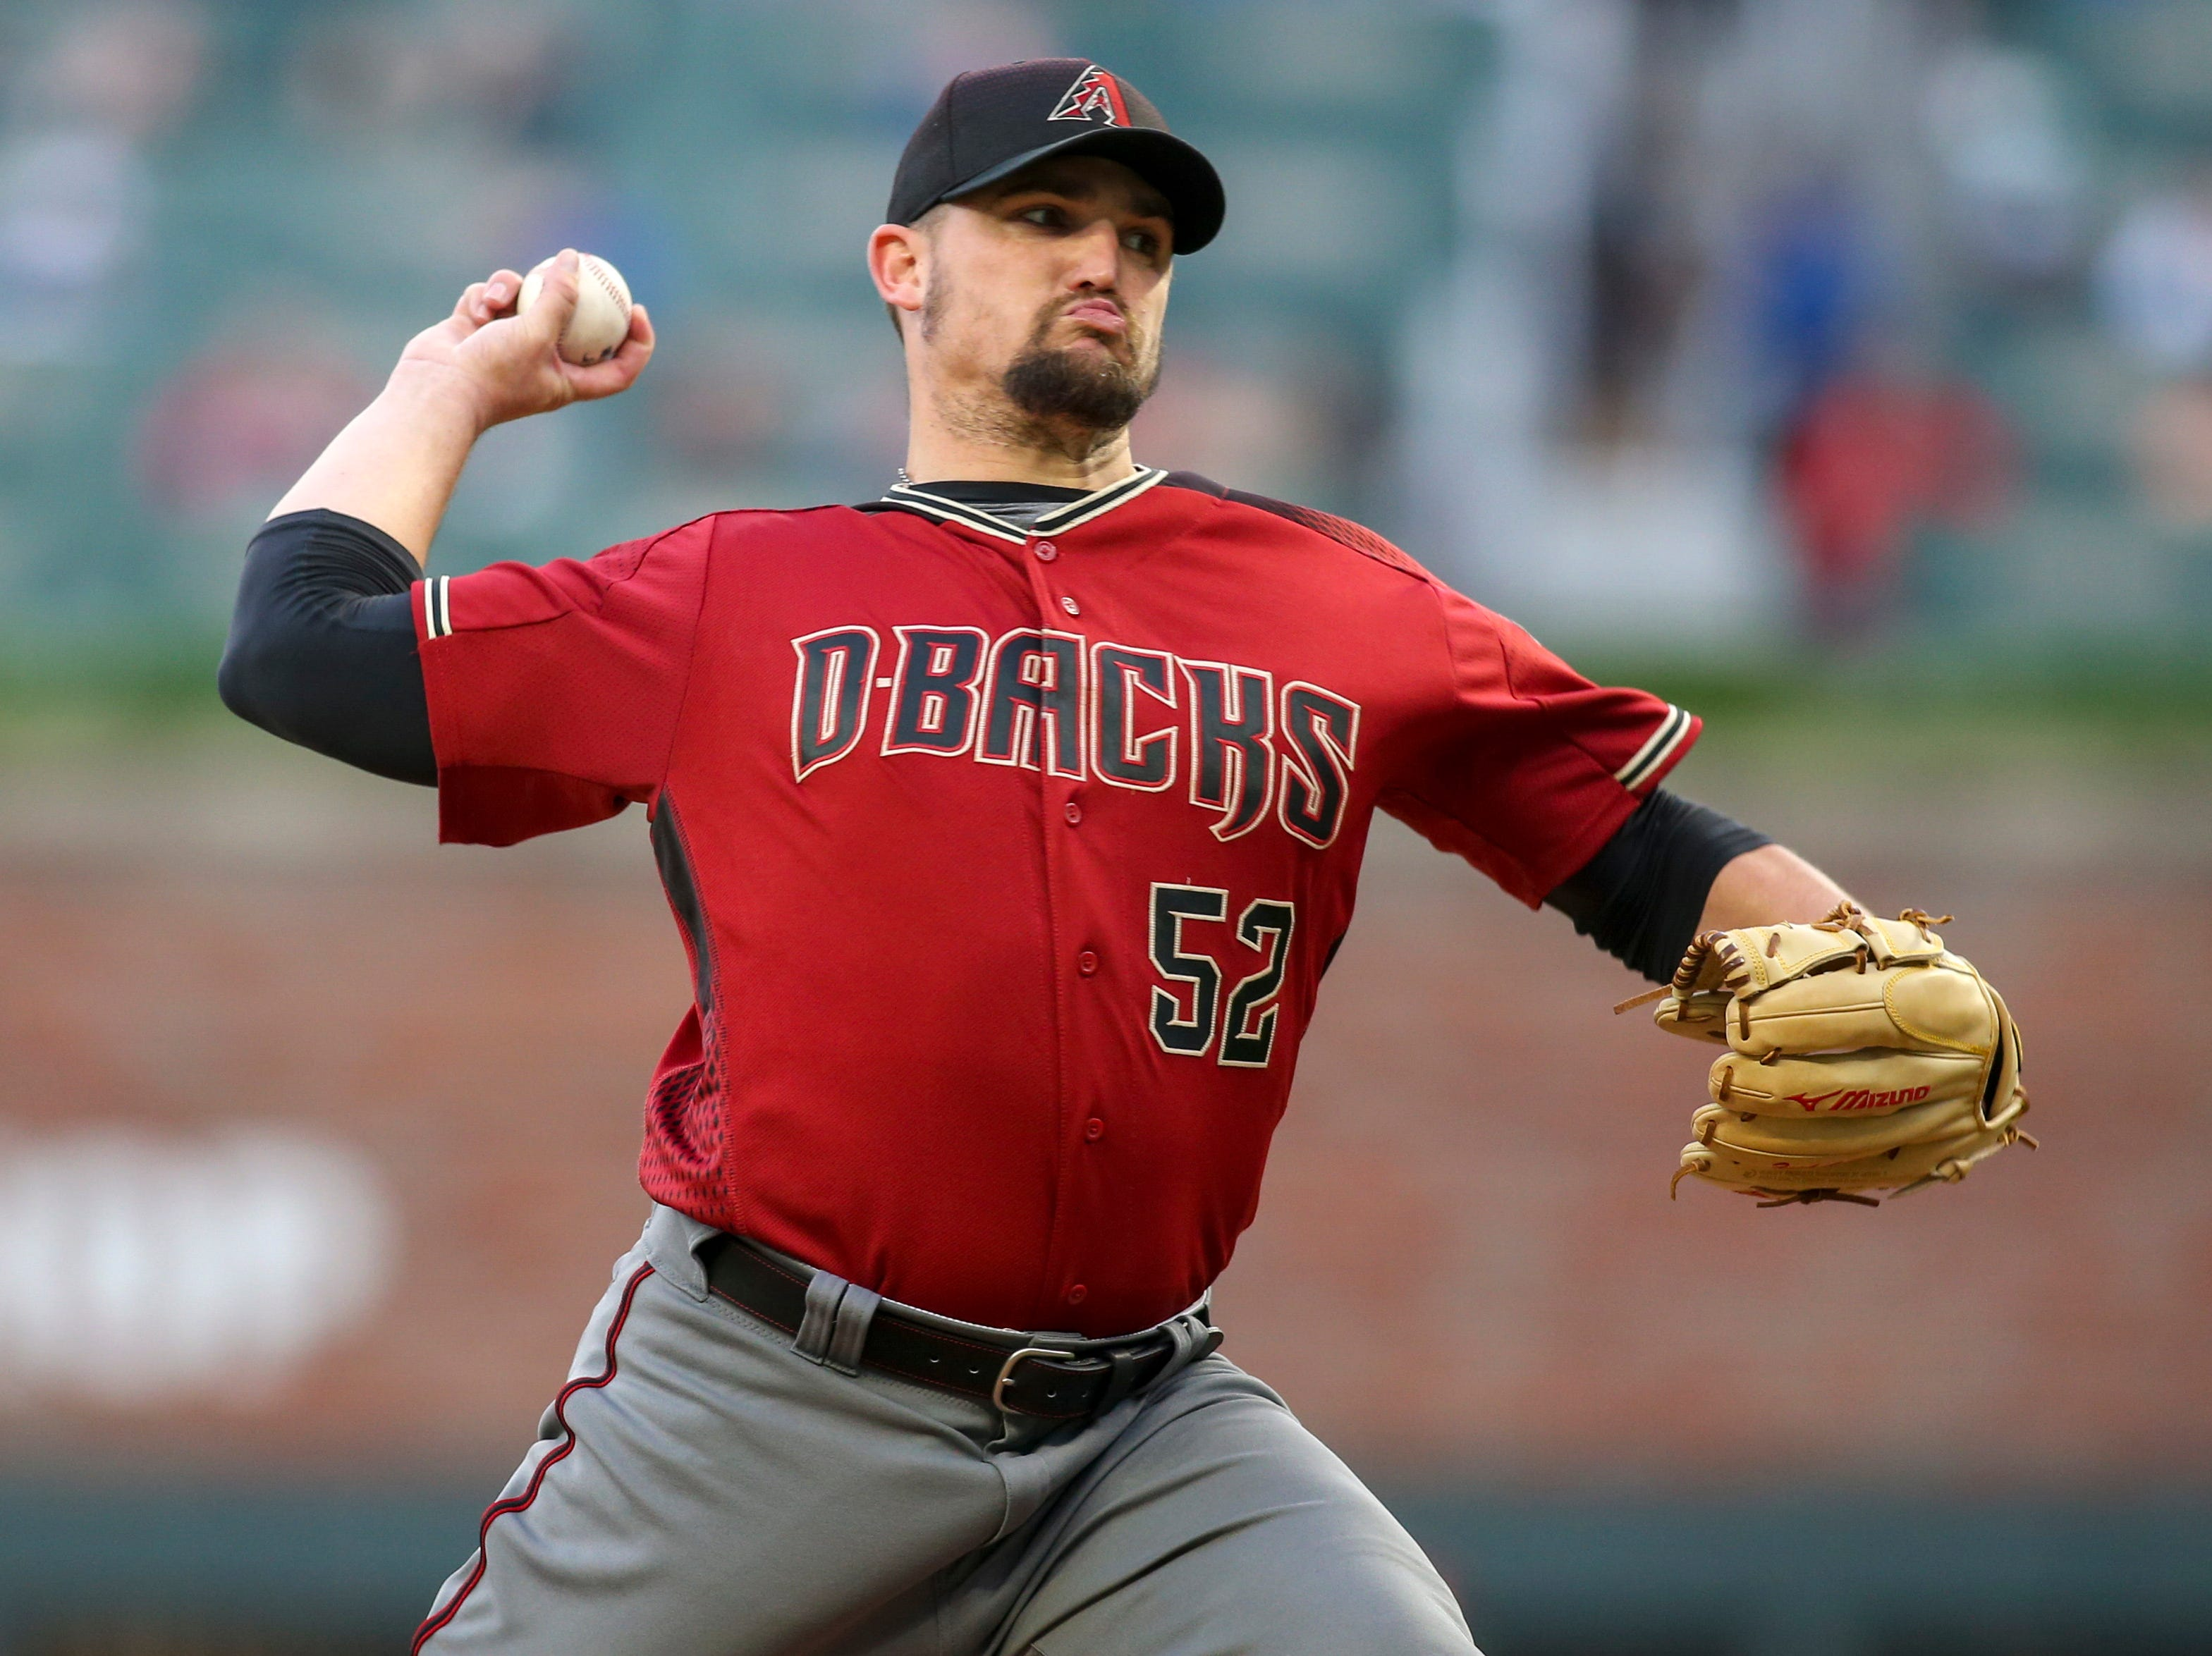 Apr 17, 2019; Atlanta, GA, USA; Arizona Diamondbacks starting pitcher Zack Godley (52) throws against the Atlanta Braves in the first inning at SunTrust Park. Mandatory Credit: Brett Davis-USA TODAY Sports